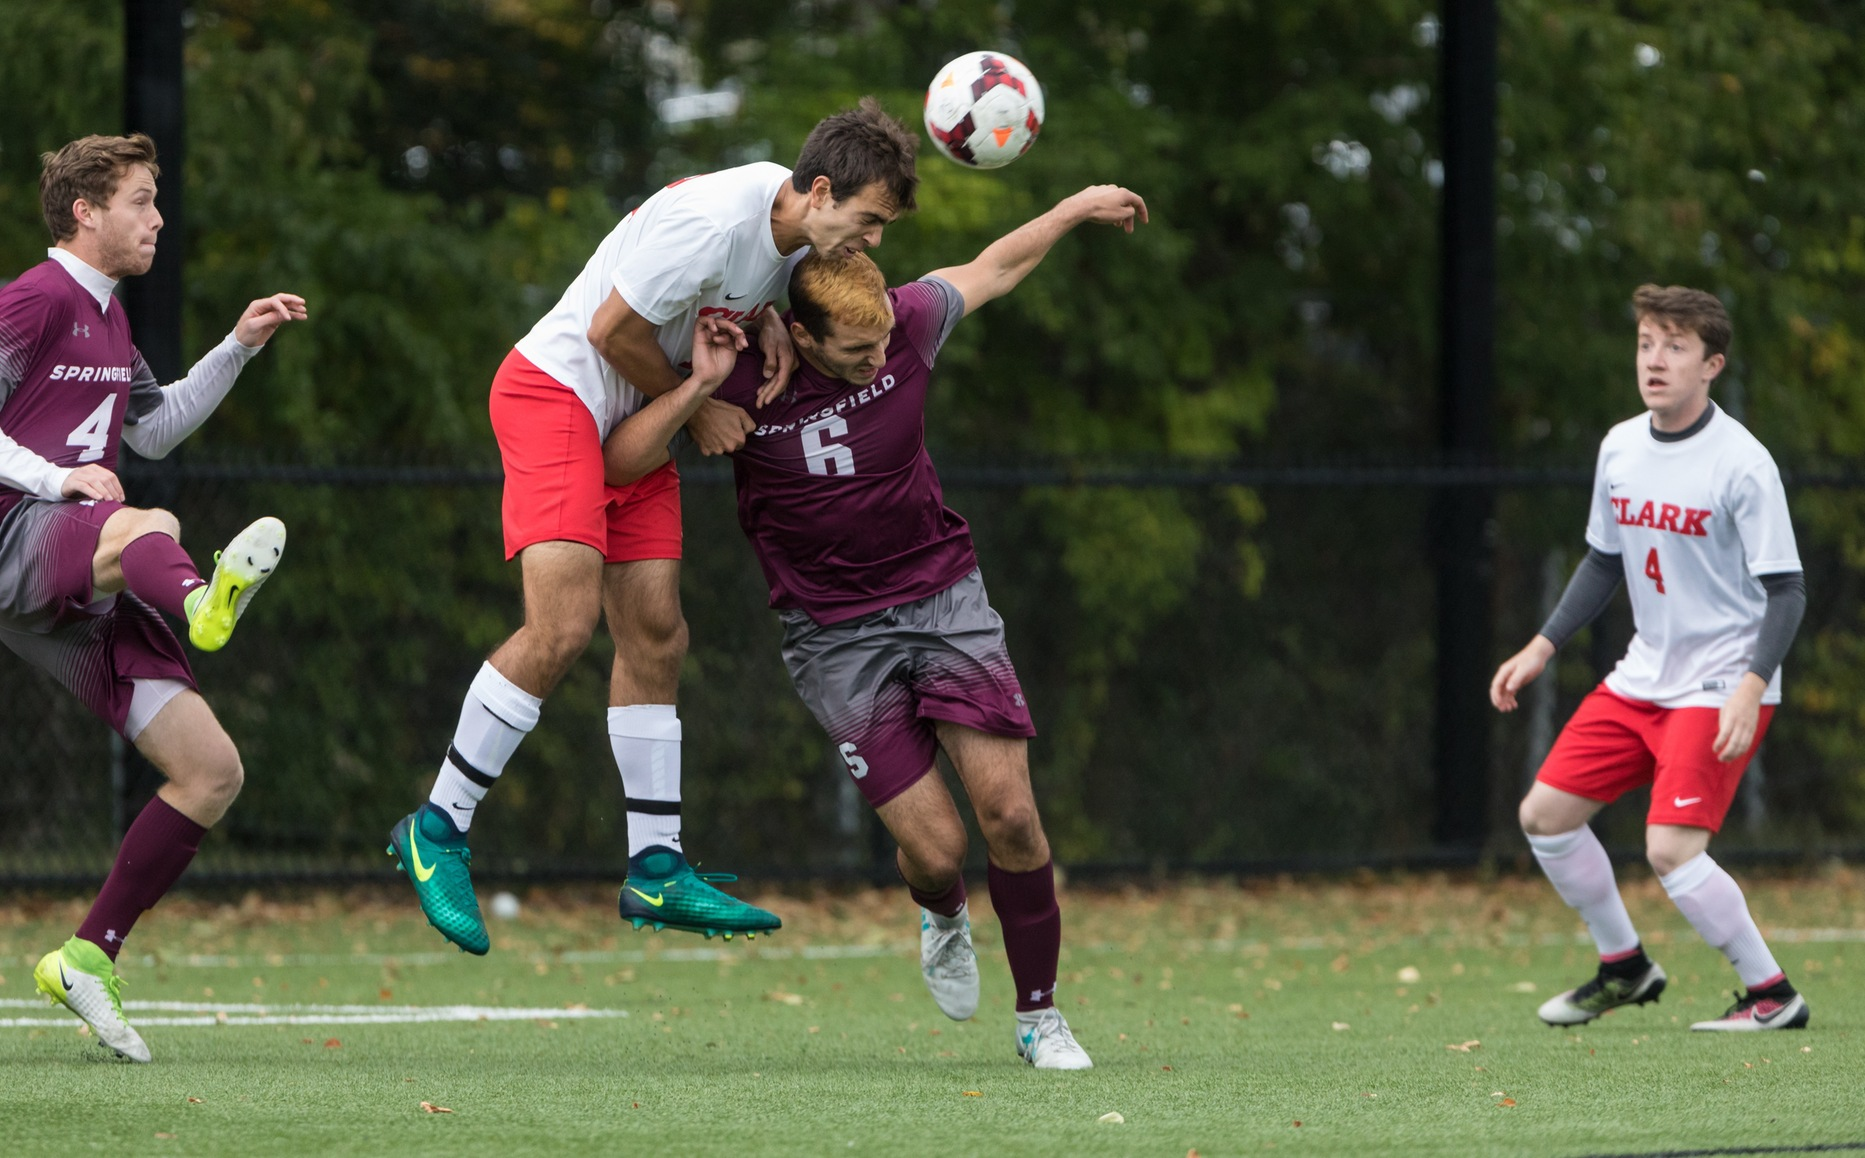 No. 4 Men's Soccer at No. 1 Springfield College Preview